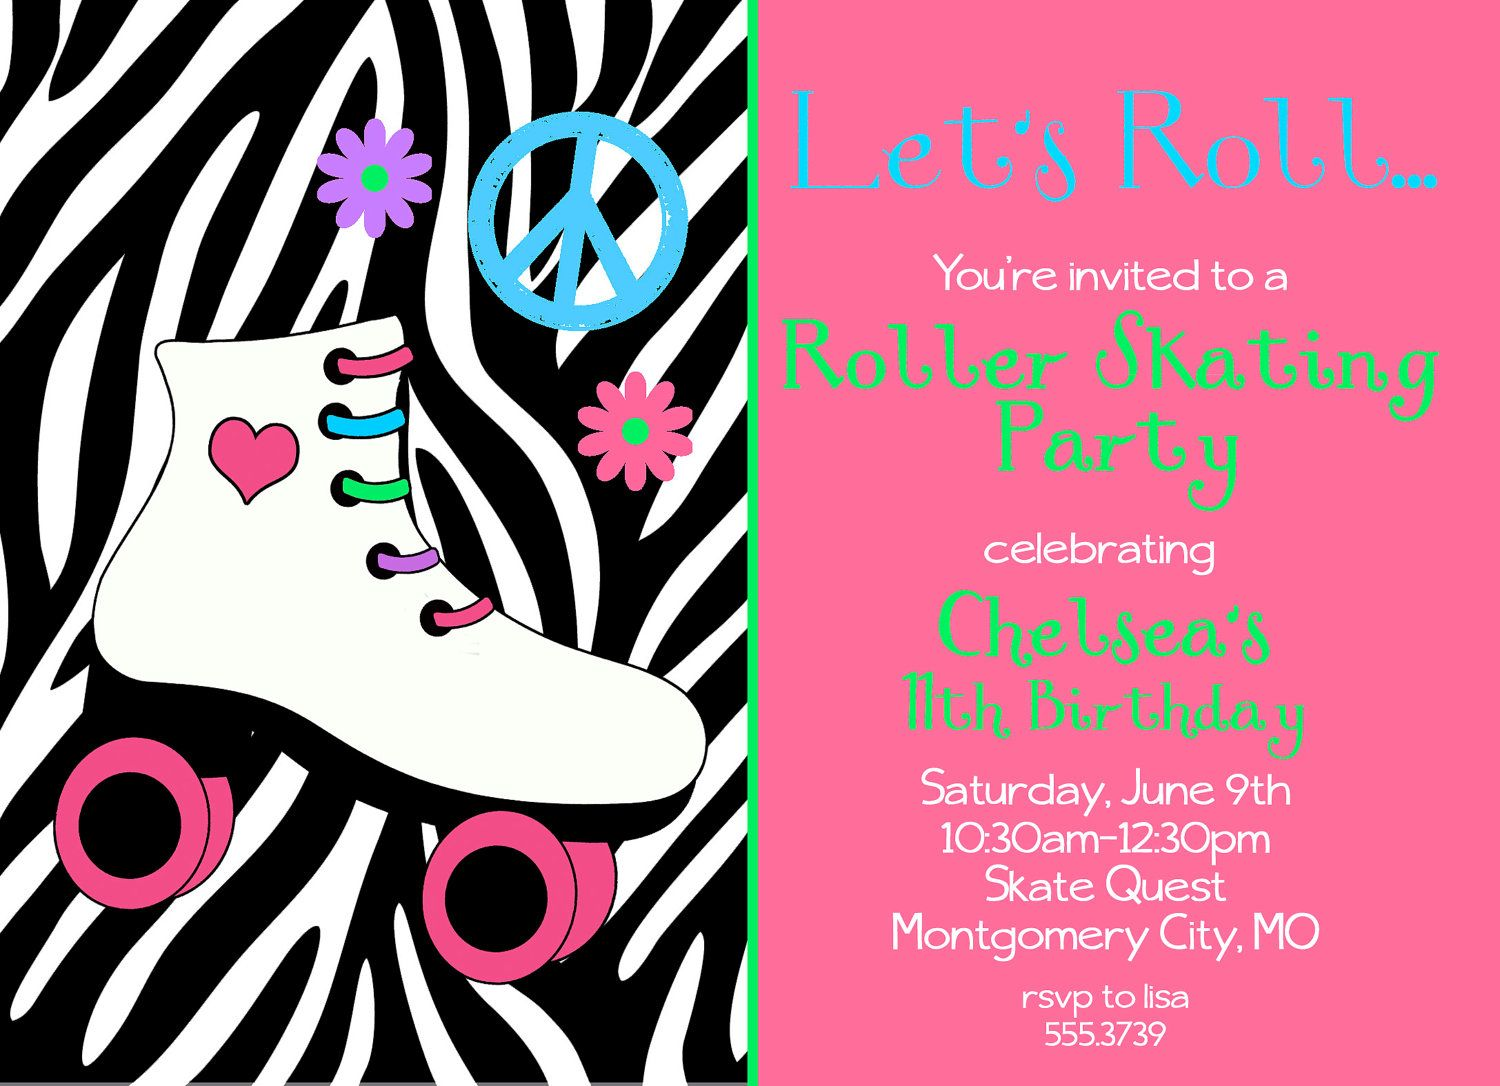 Let\'s Roll-A roller skating party invitation, personalized and ...